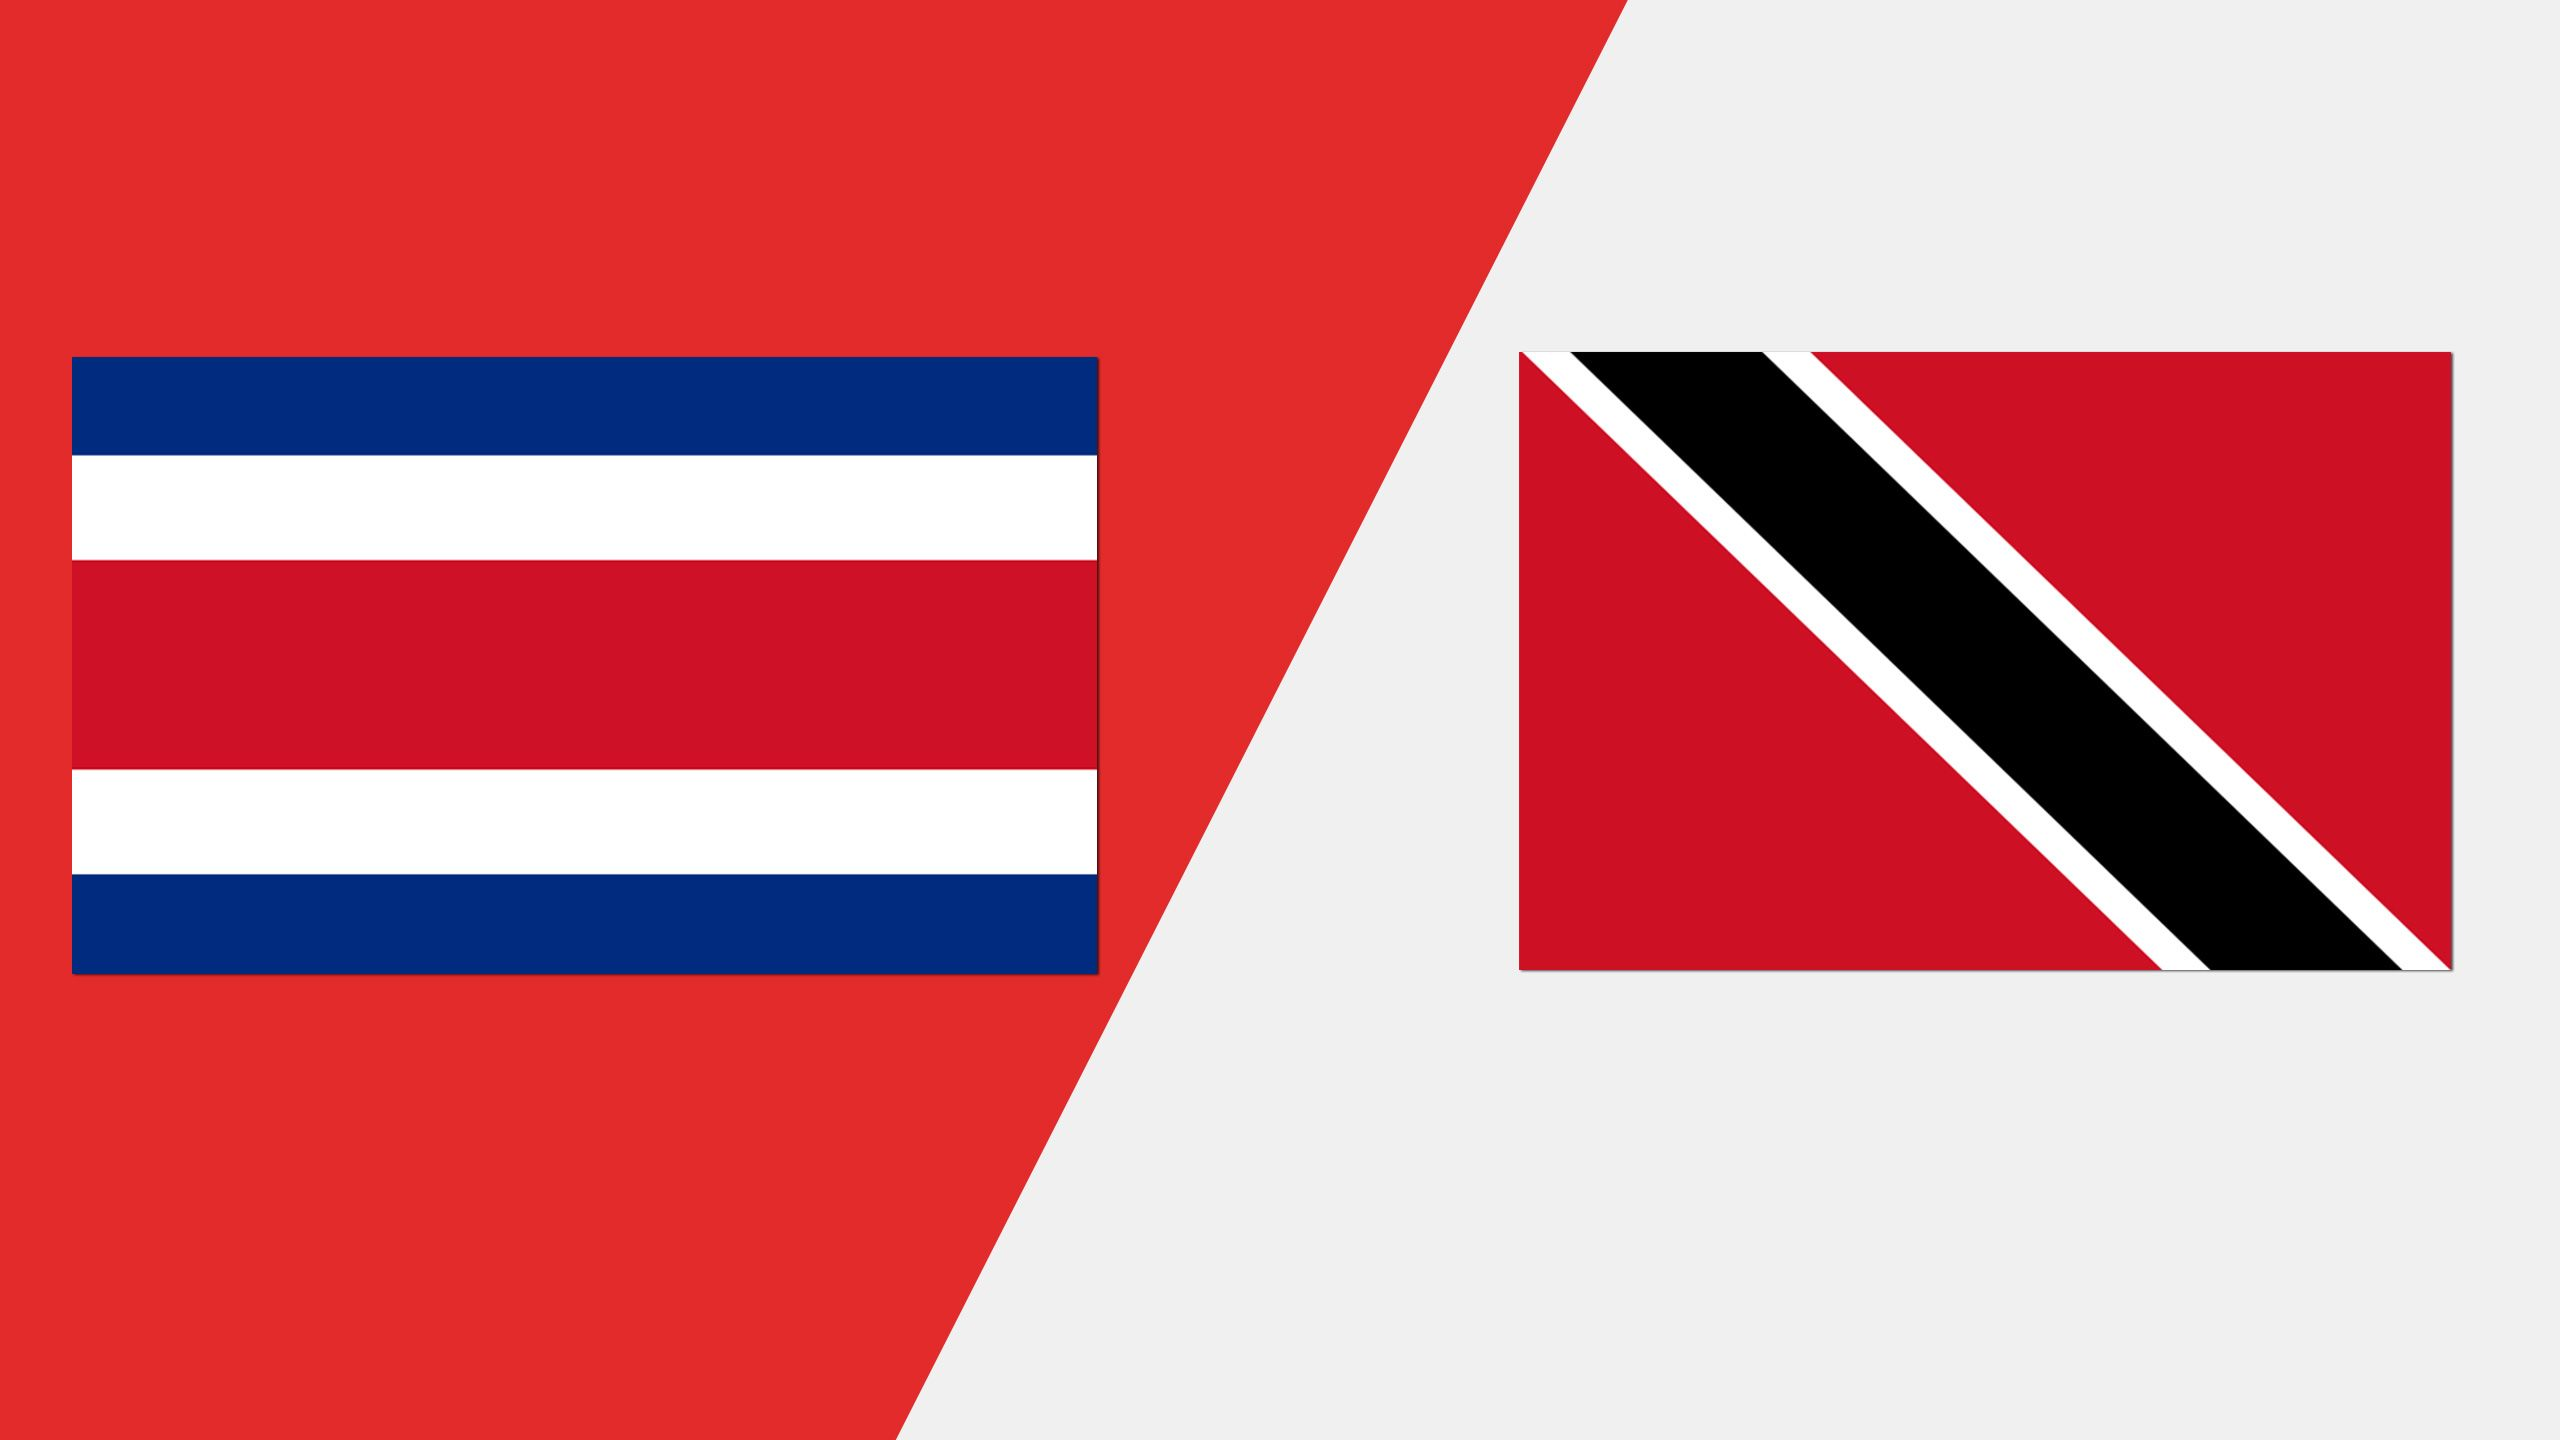 In Spanish - Costa Rica vs. Trinidad y Tobago (Grupo A)